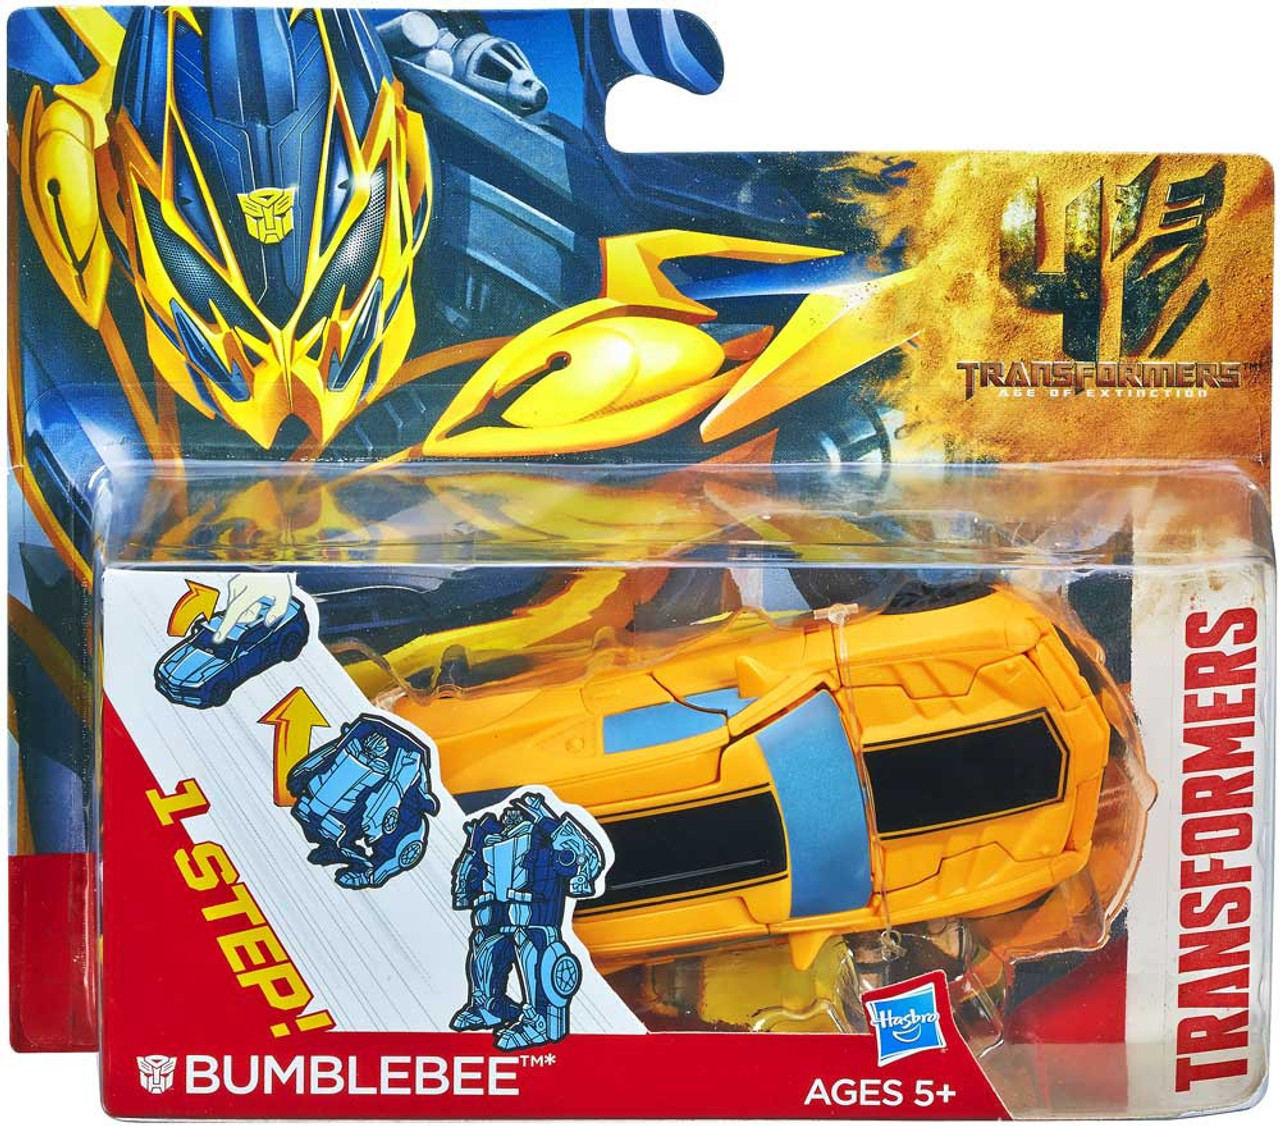 Transformers Age of Extinction 1 Step Changer Bumblebee Action Figure